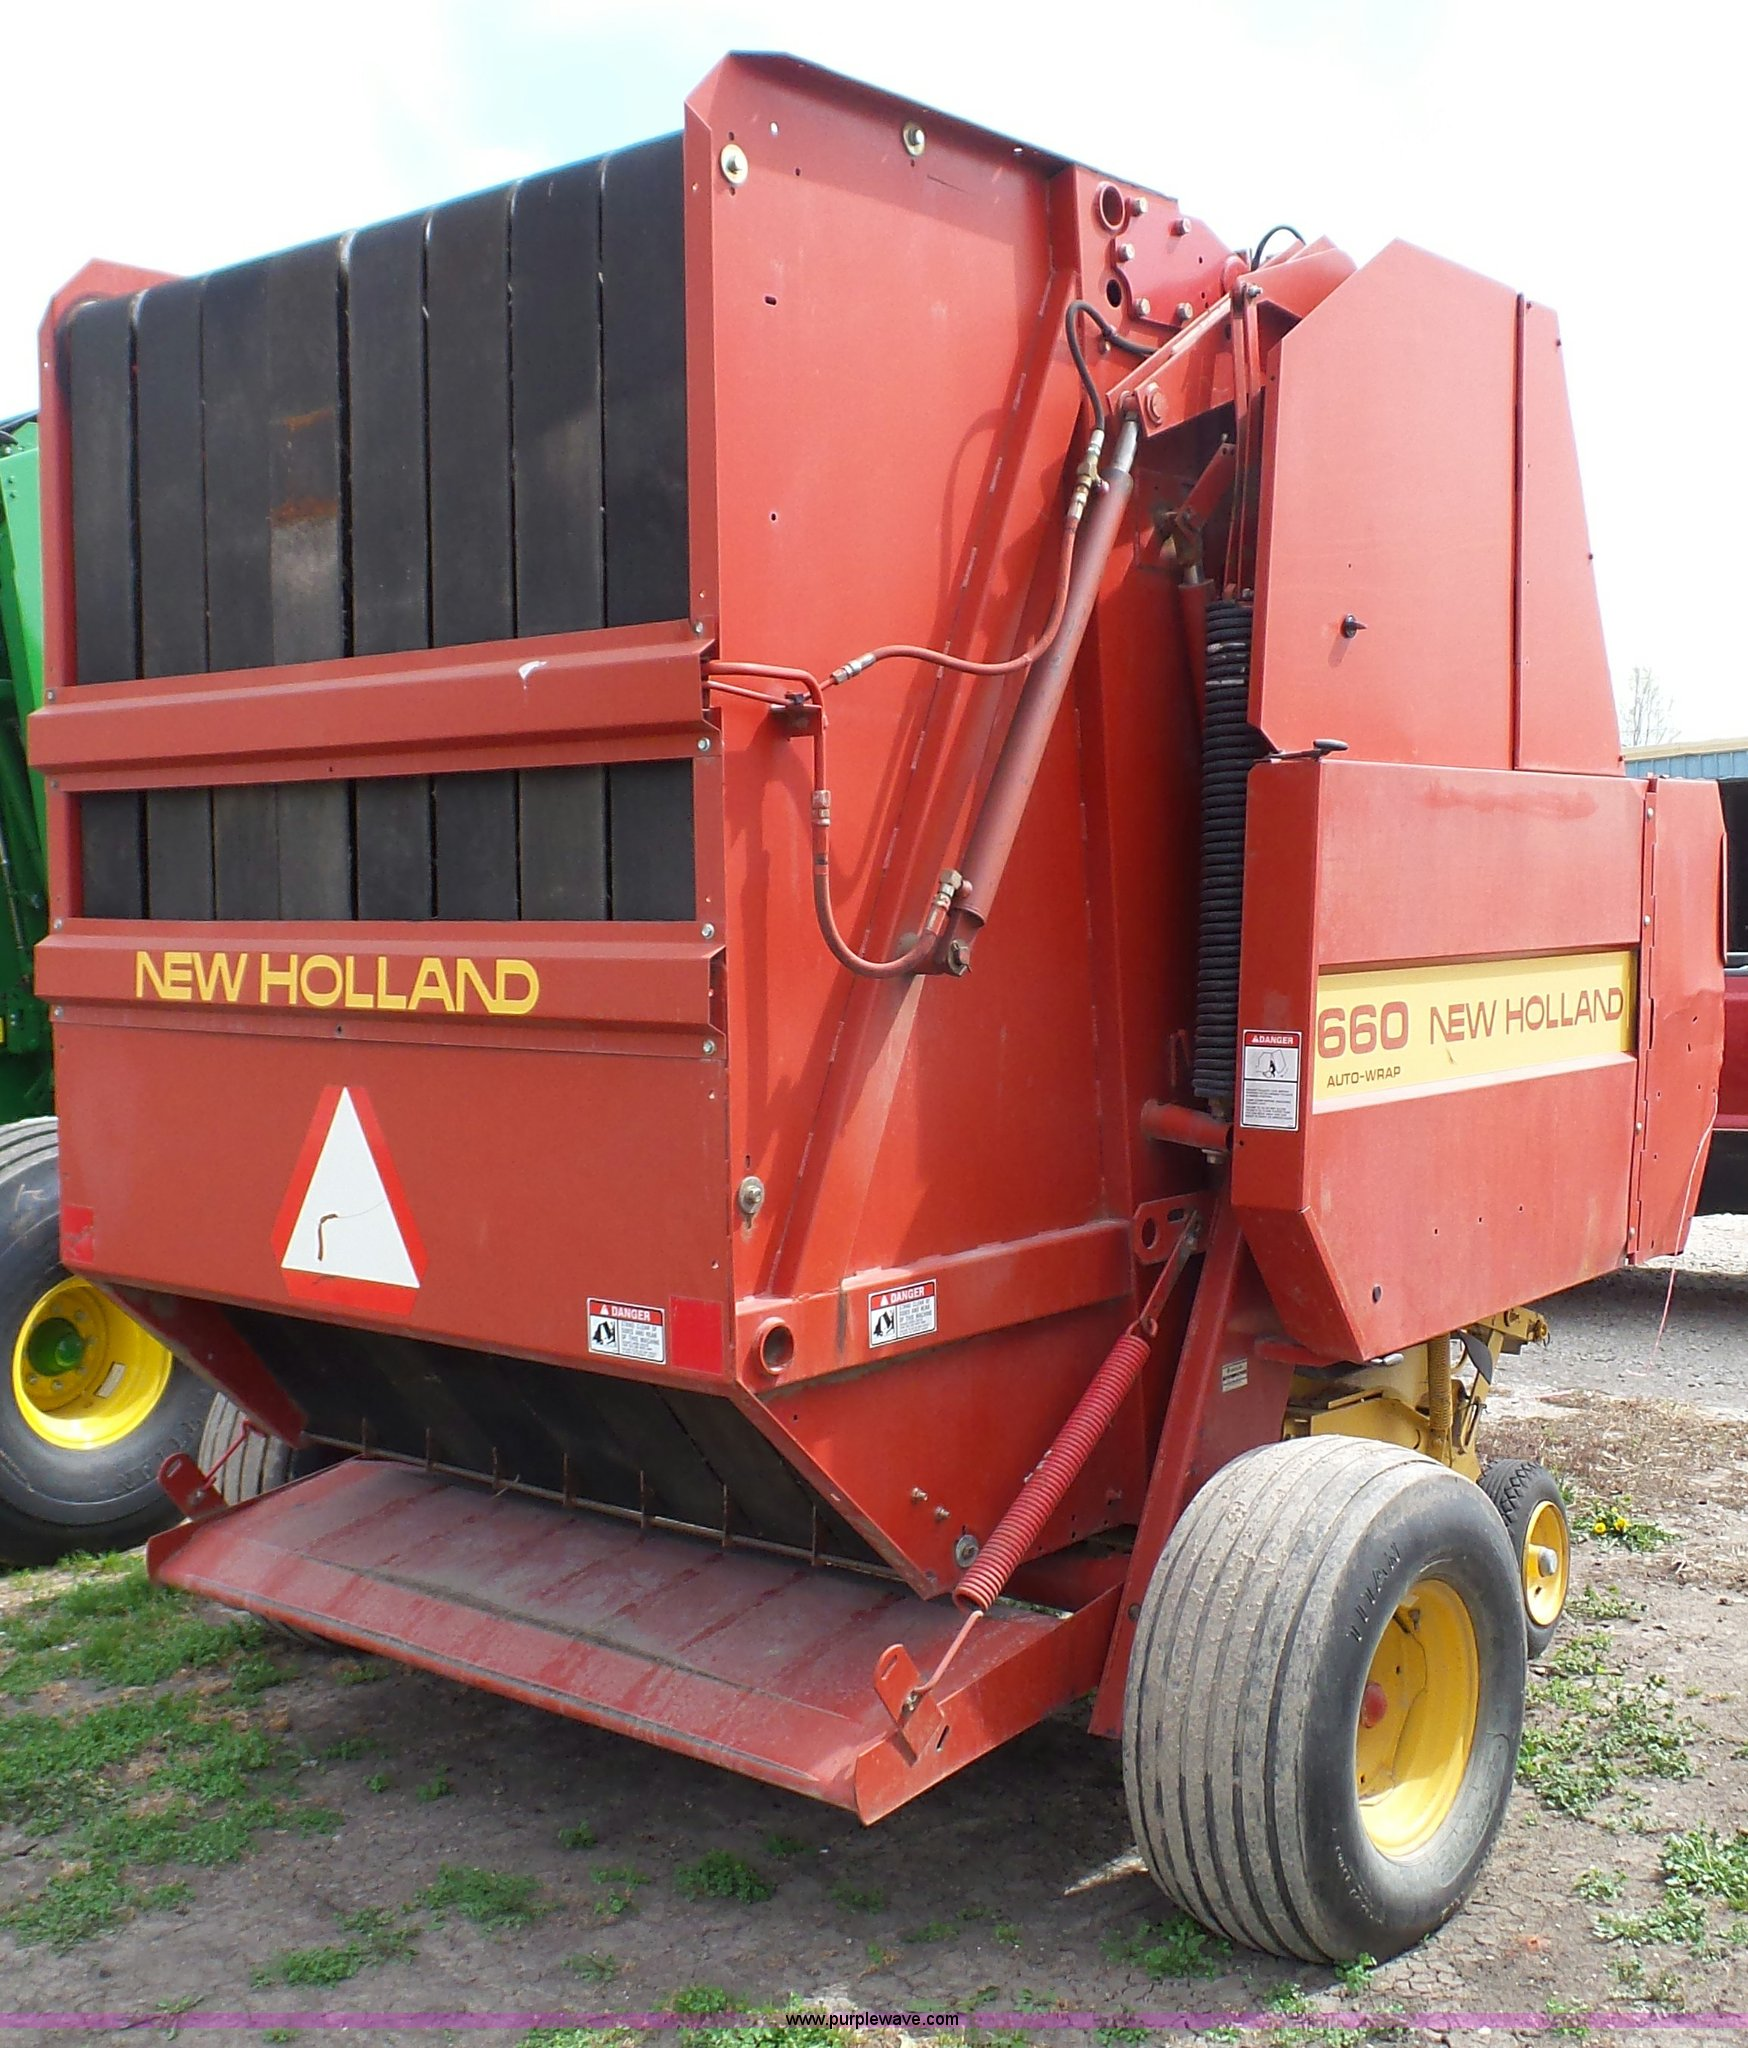 New holland 660 round Baler parts square